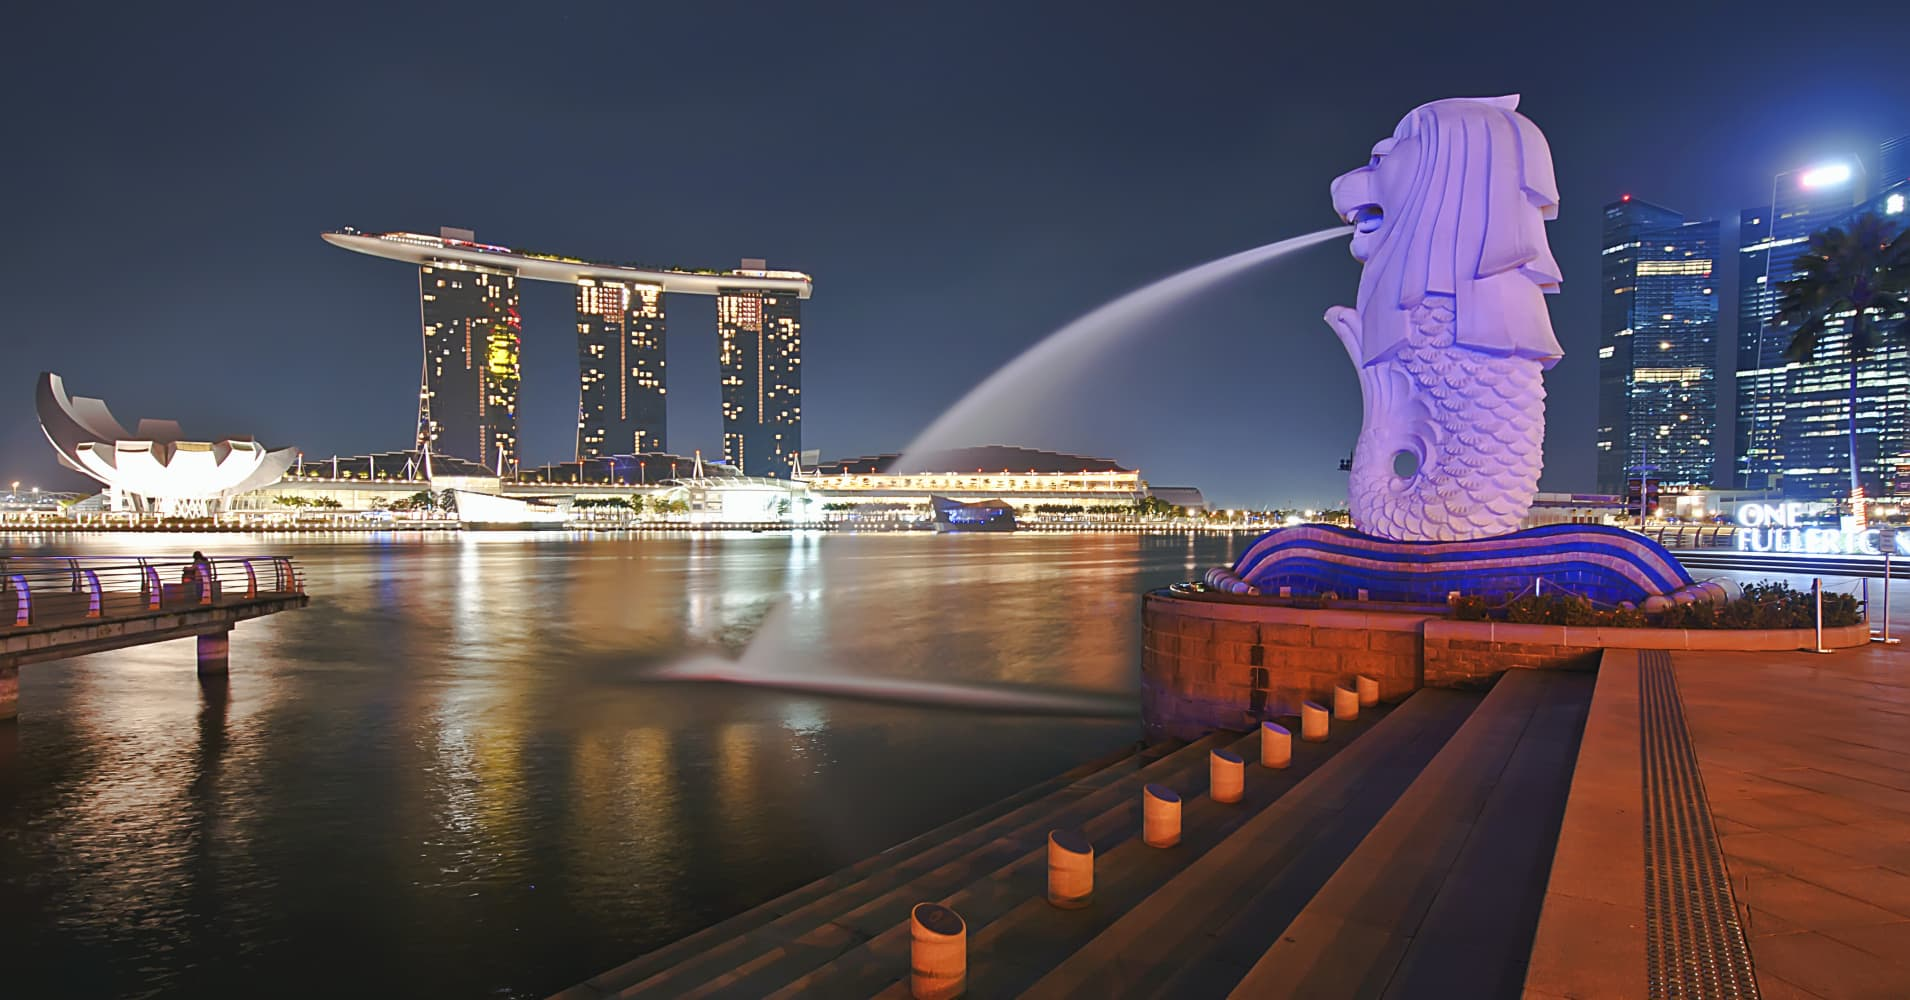 singapore economy All day, every day, low fares from jetstar asia - singapore.